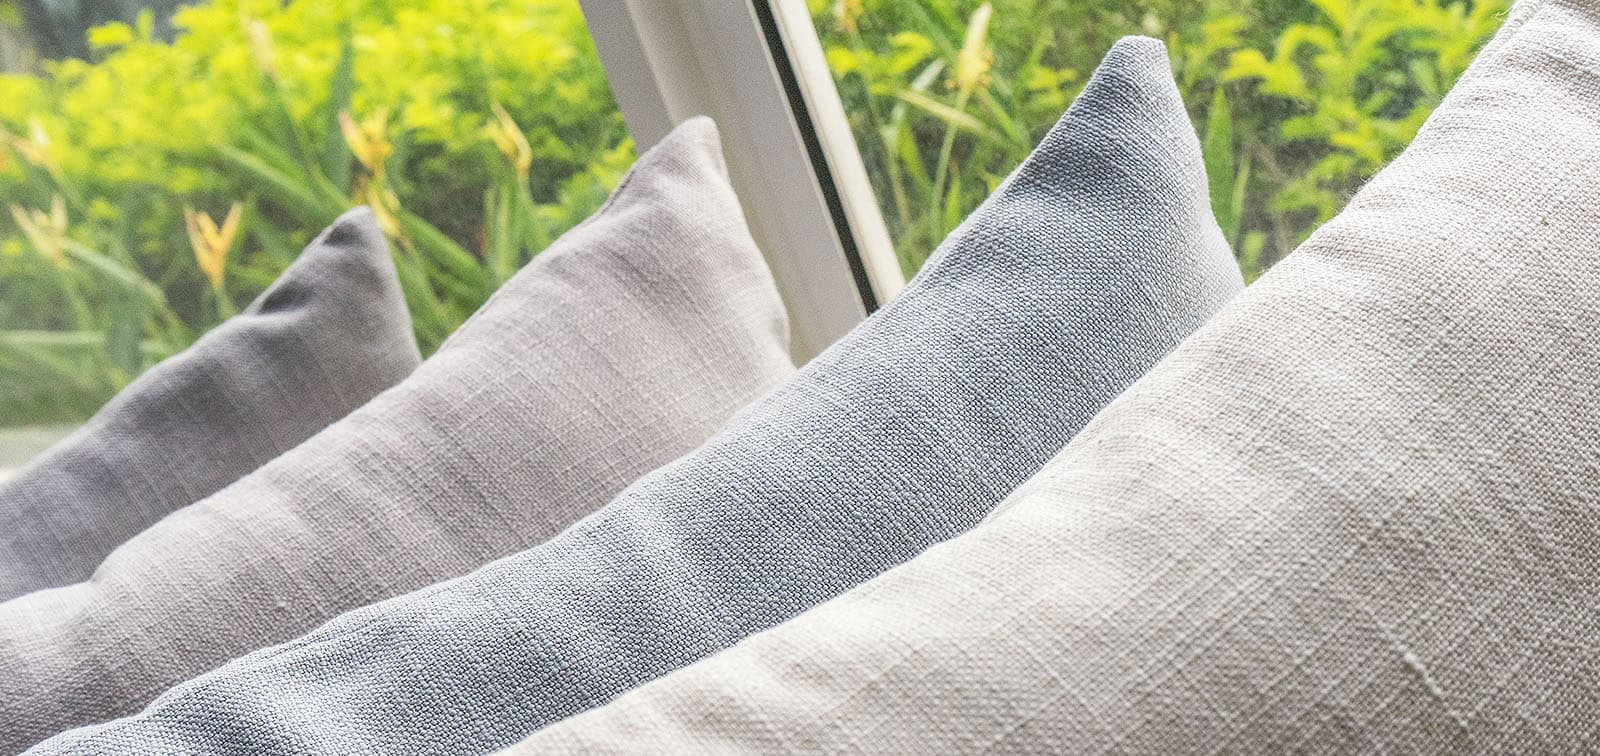 Custom Sofa Cushions Covered in Linen Covers by Comfort Works